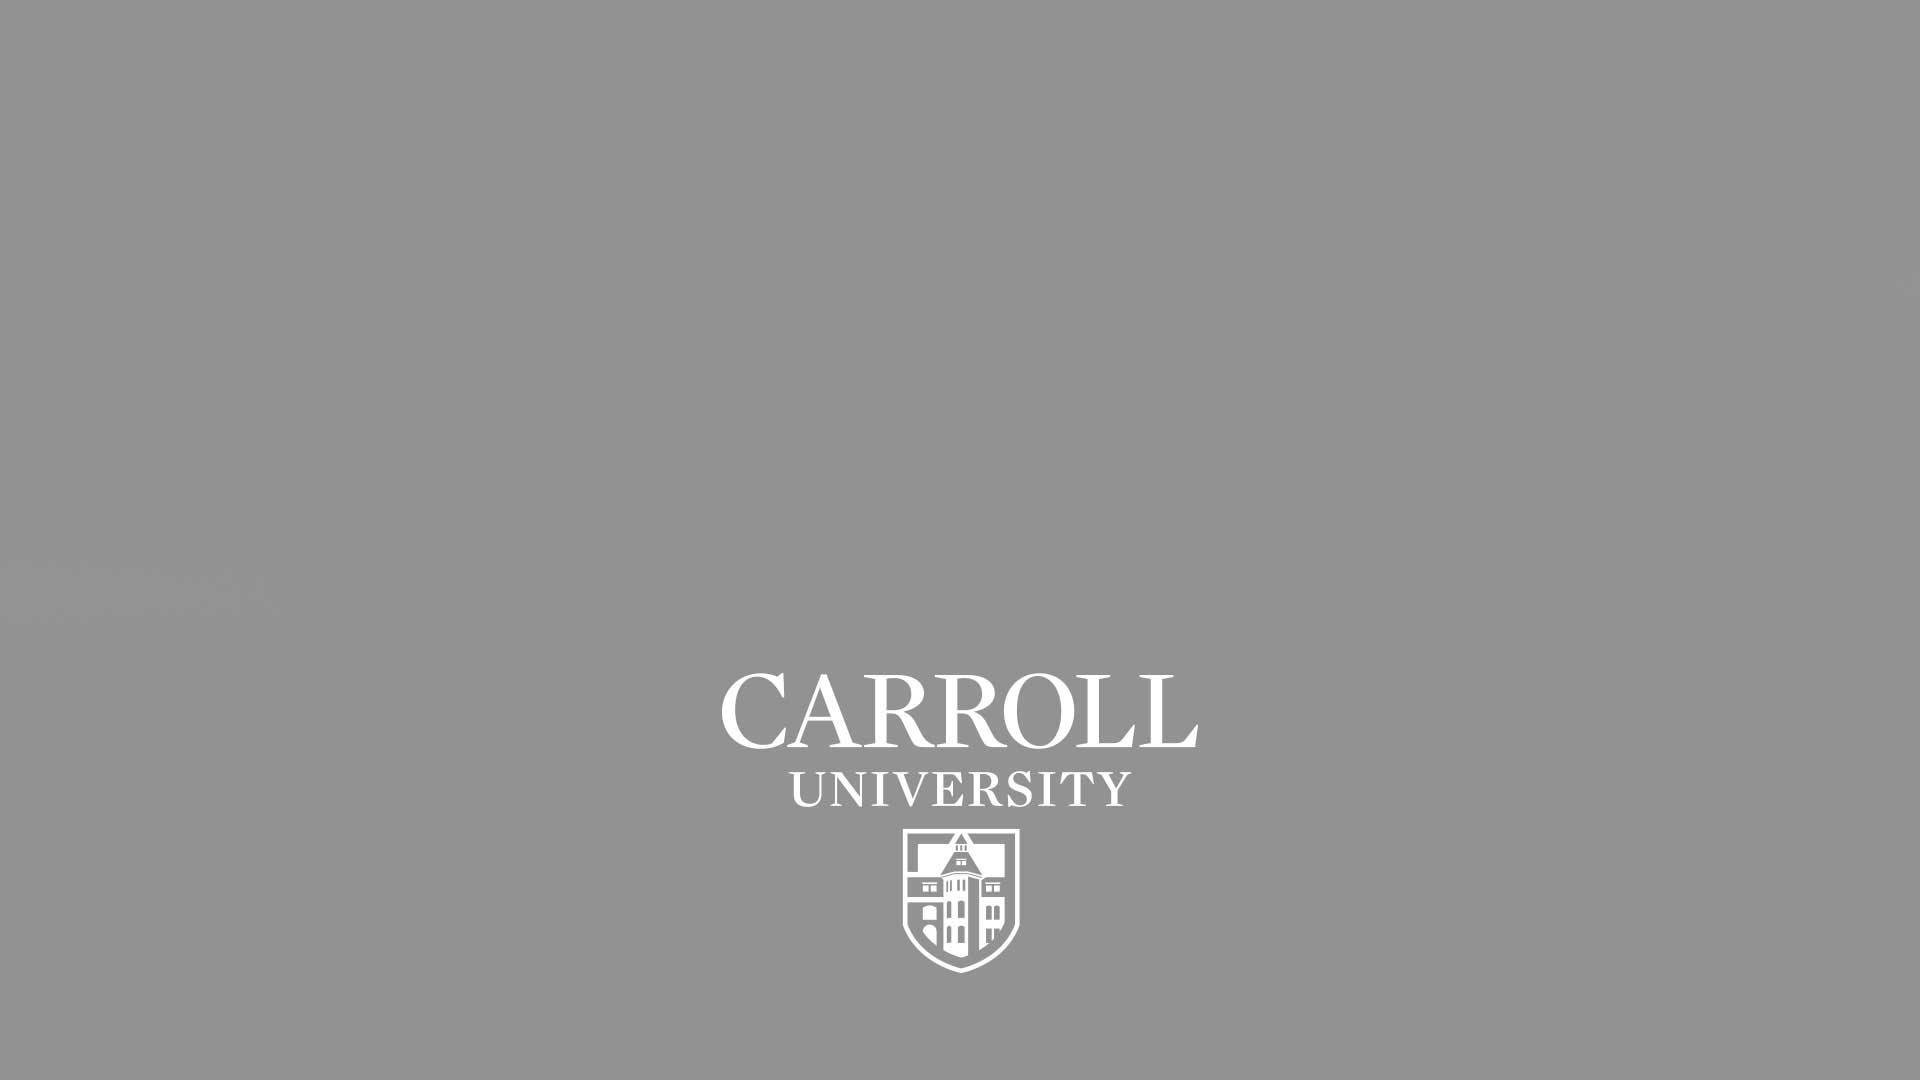 Carroll University logo with gray background